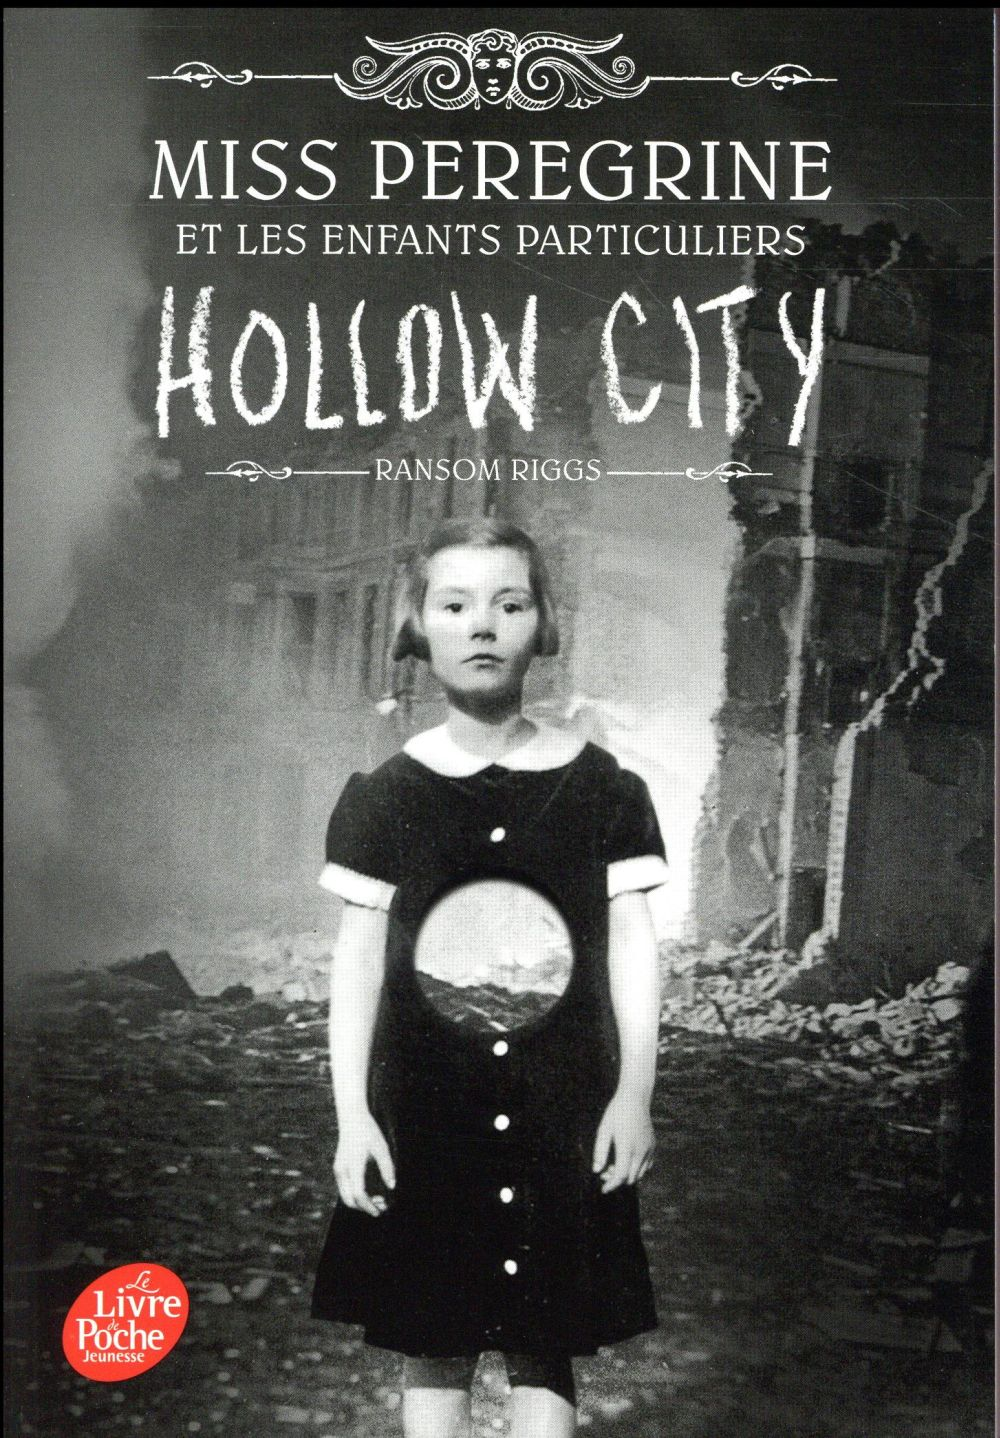 MISS PEREGRINE - T01 - MISS PEREGRINE - TOME 2 - HOLLOW CITY